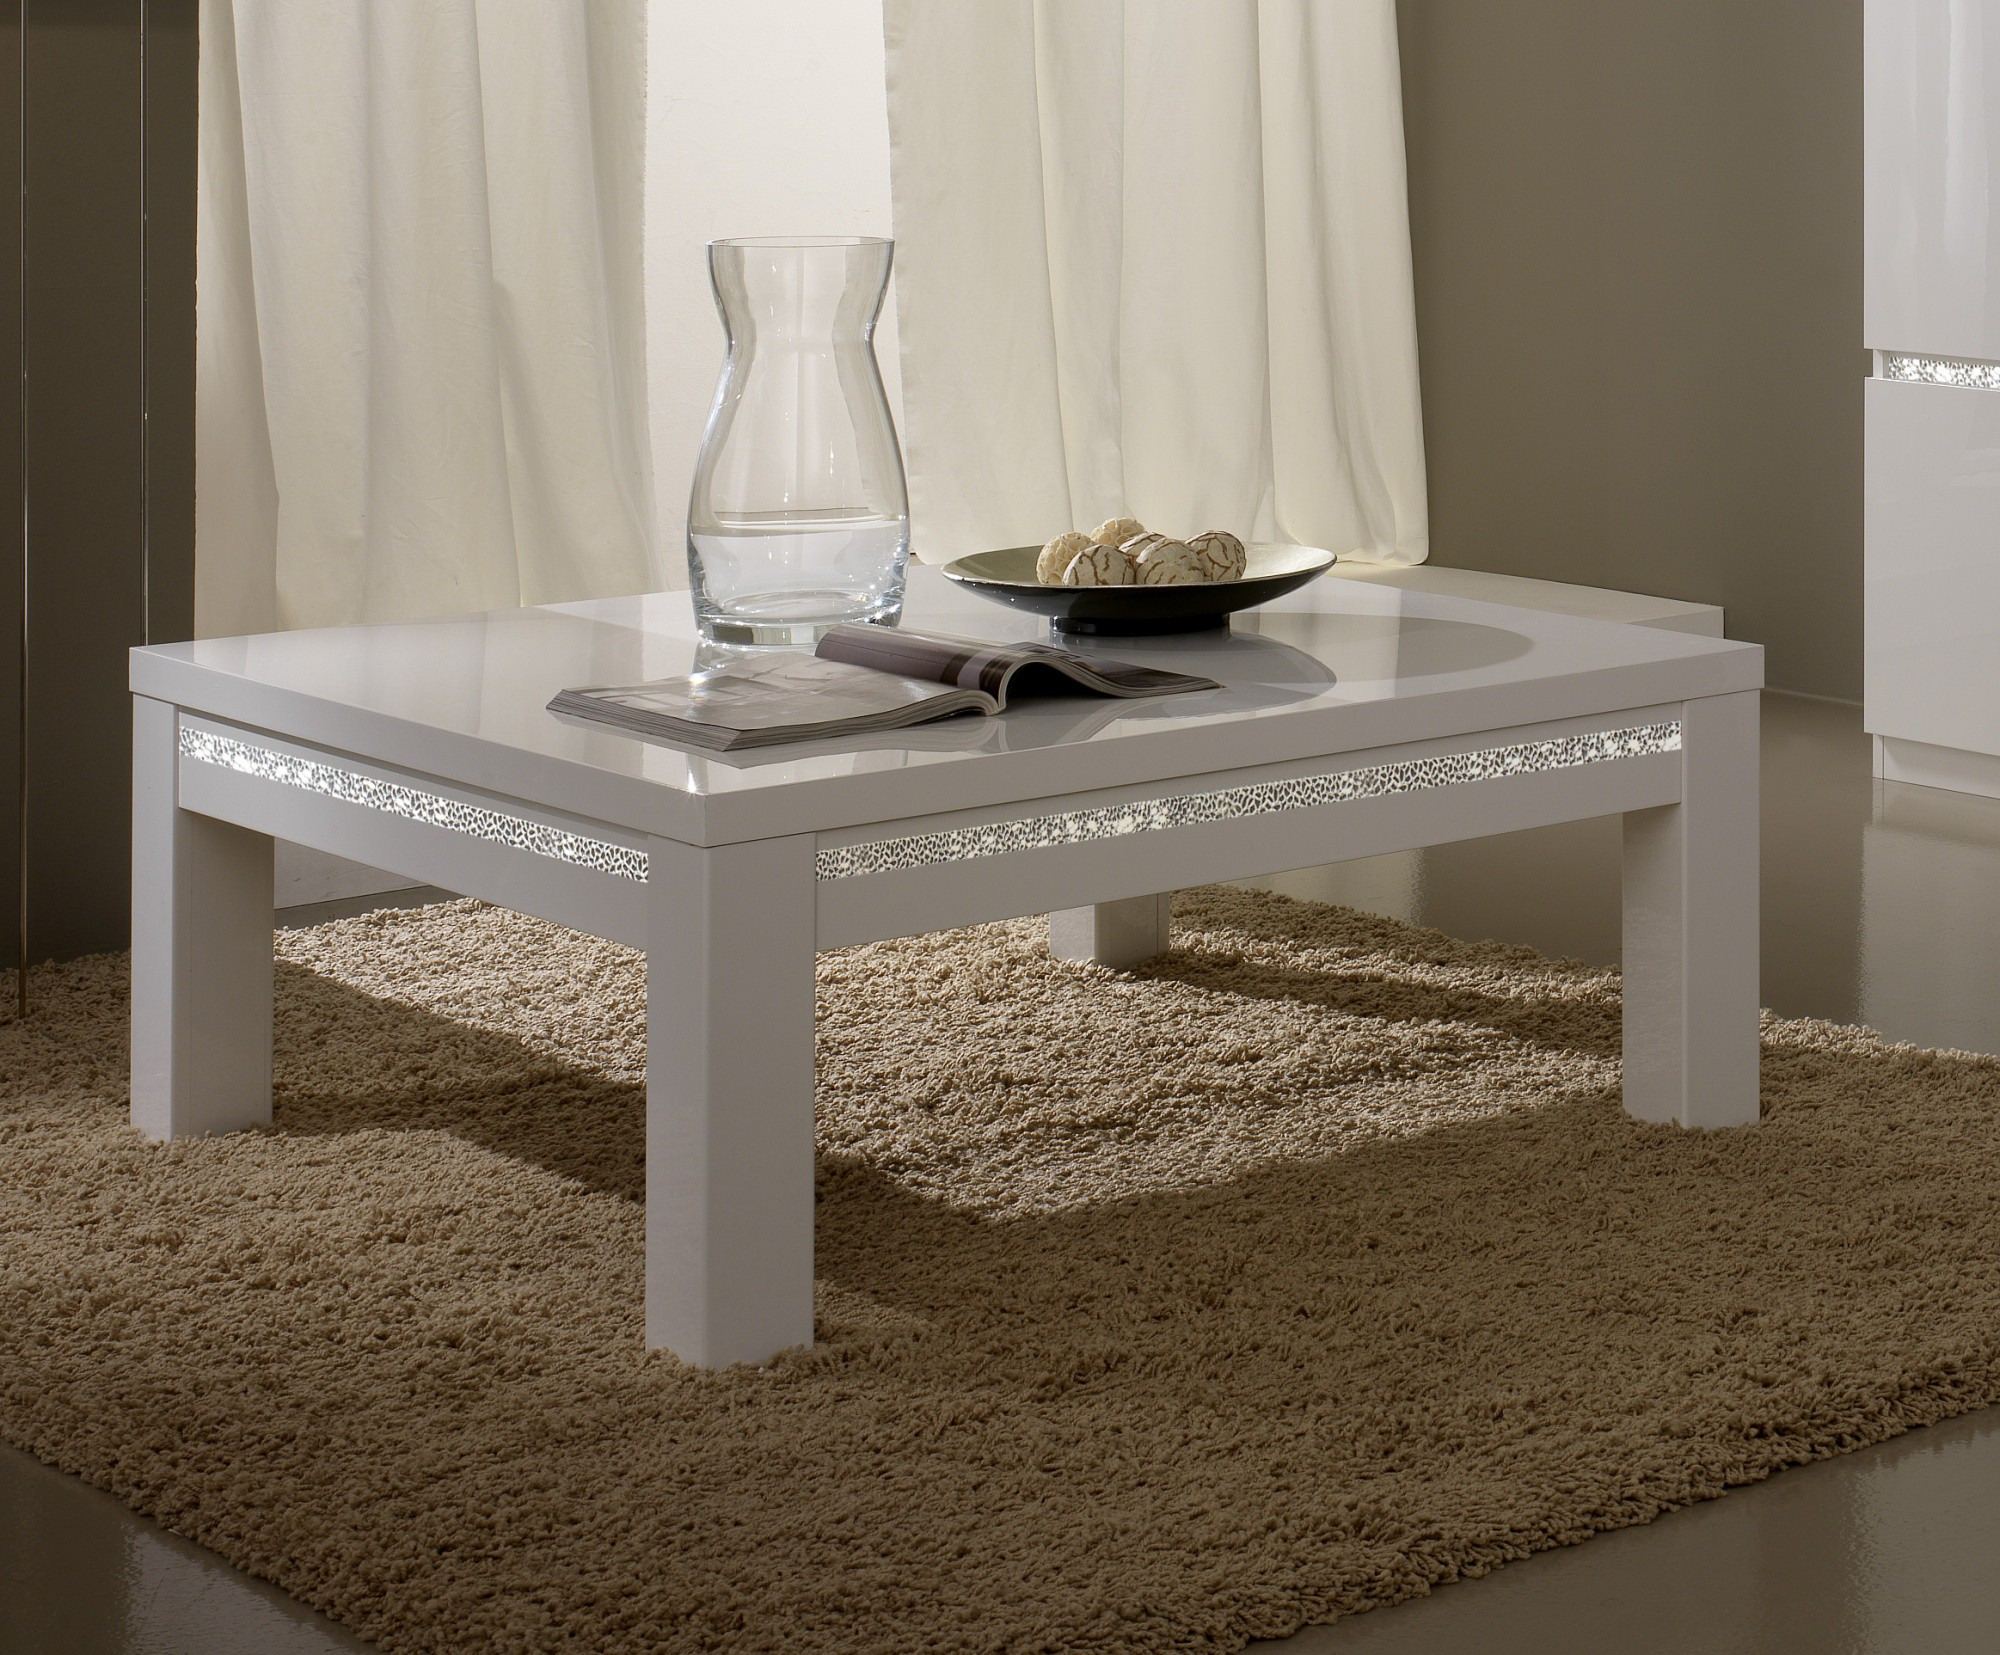 table basse moderne blanche id es de d coration int rieure french decor. Black Bedroom Furniture Sets. Home Design Ideas